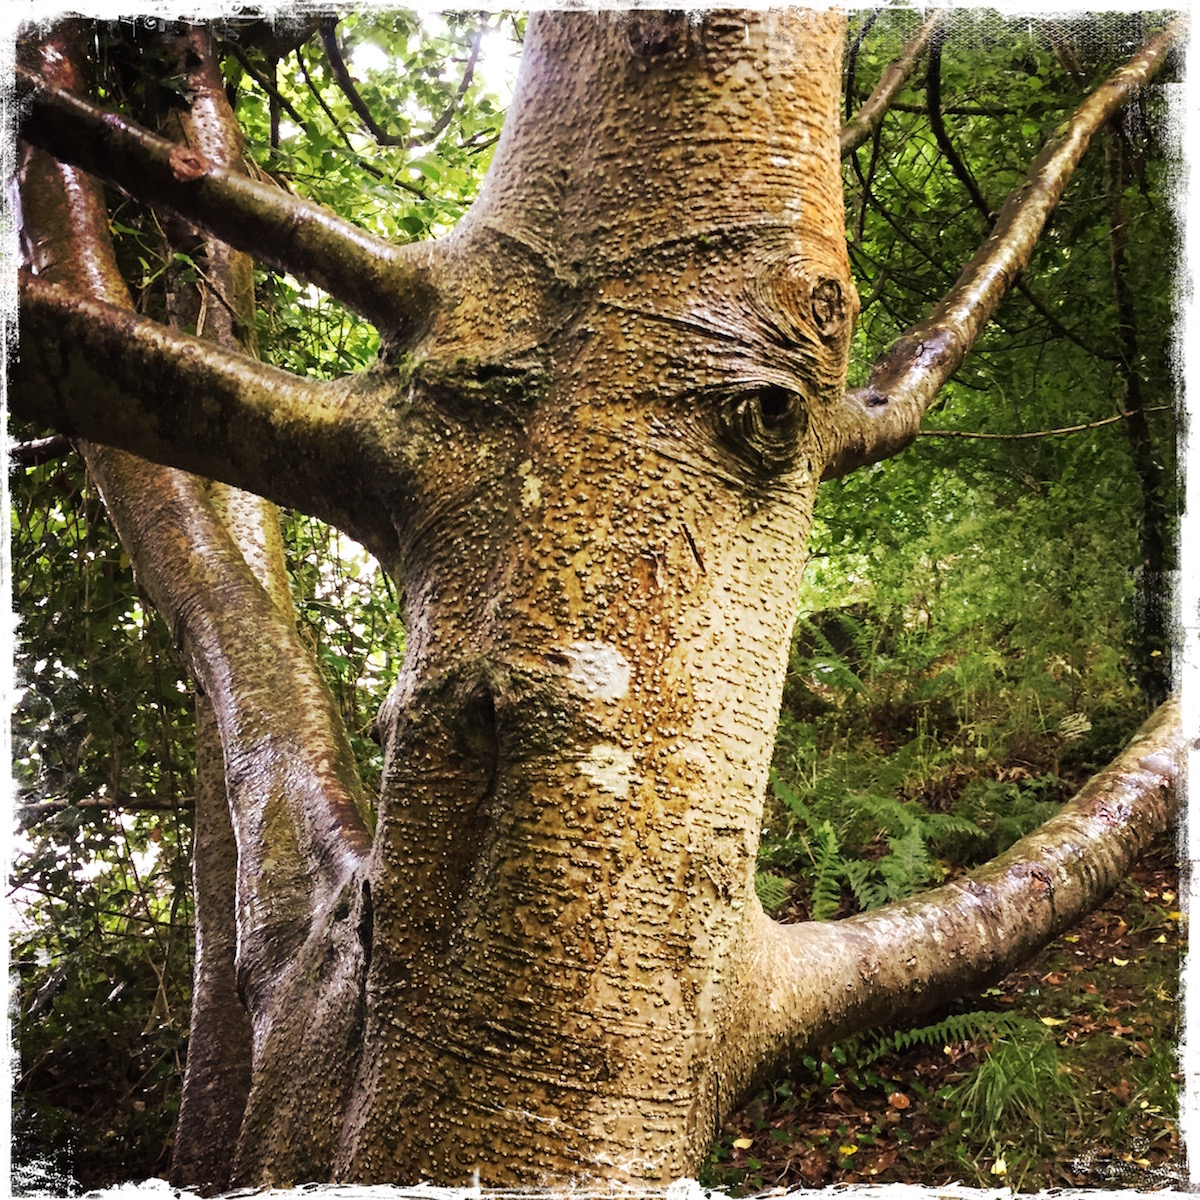 Met this tree friend in the Hazelwood Forest in Ireland. Photo by Barbara Sinclair